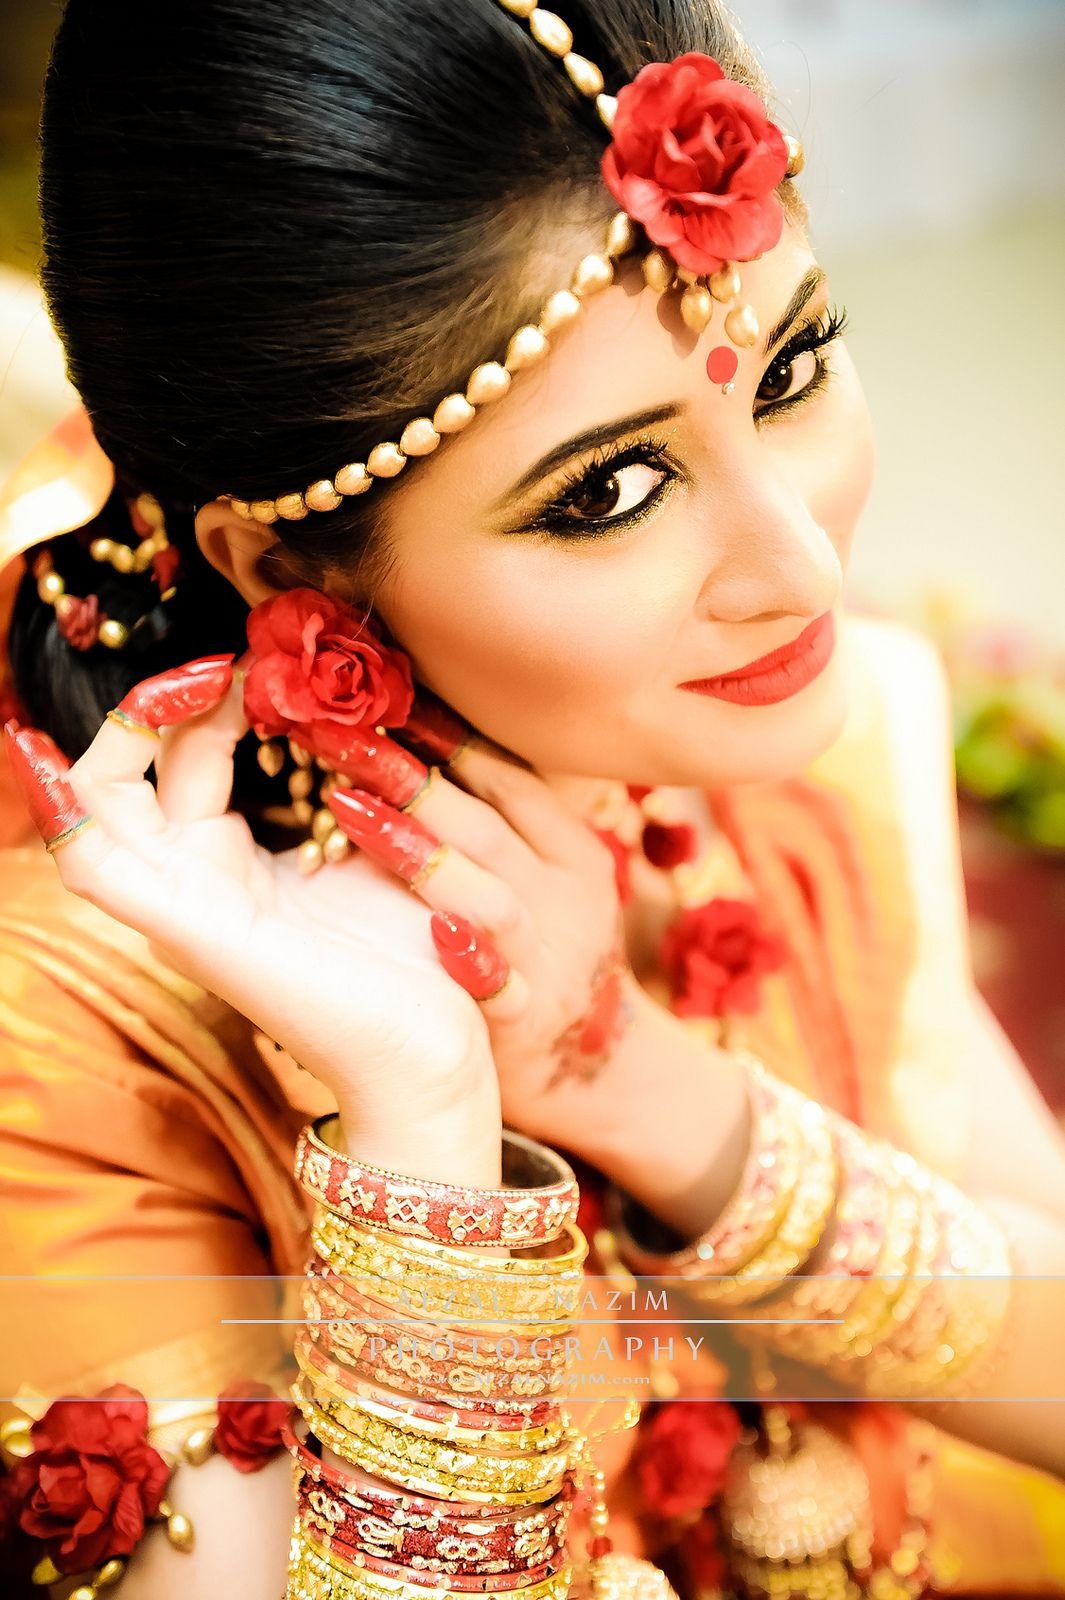 Beautiful Florals For This Bengali Bride To Be #Bangladesh Wedding | U2665Bangladeshi Bride ...